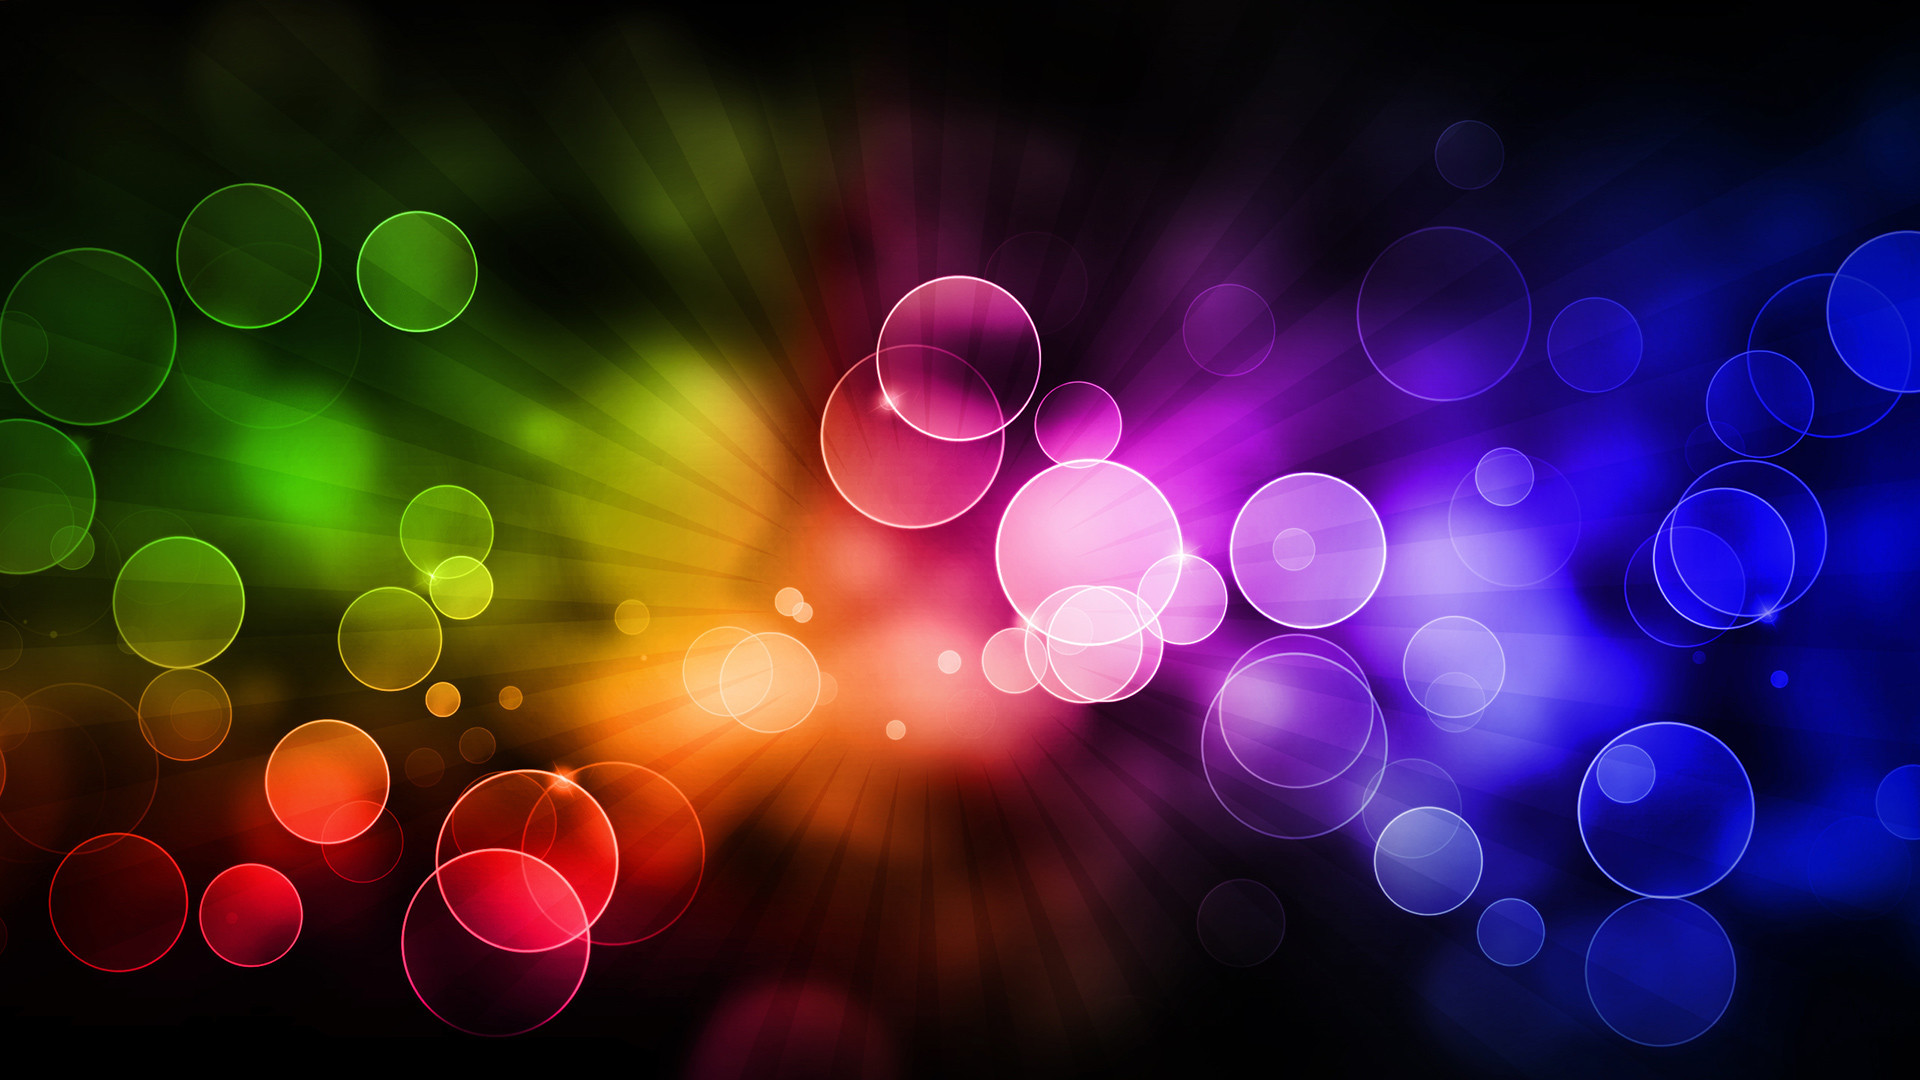 Res: 1920x1080, Cool Backgrounds 54 Cool Backgrounds 54. HD Wallpaper Rainbow ...